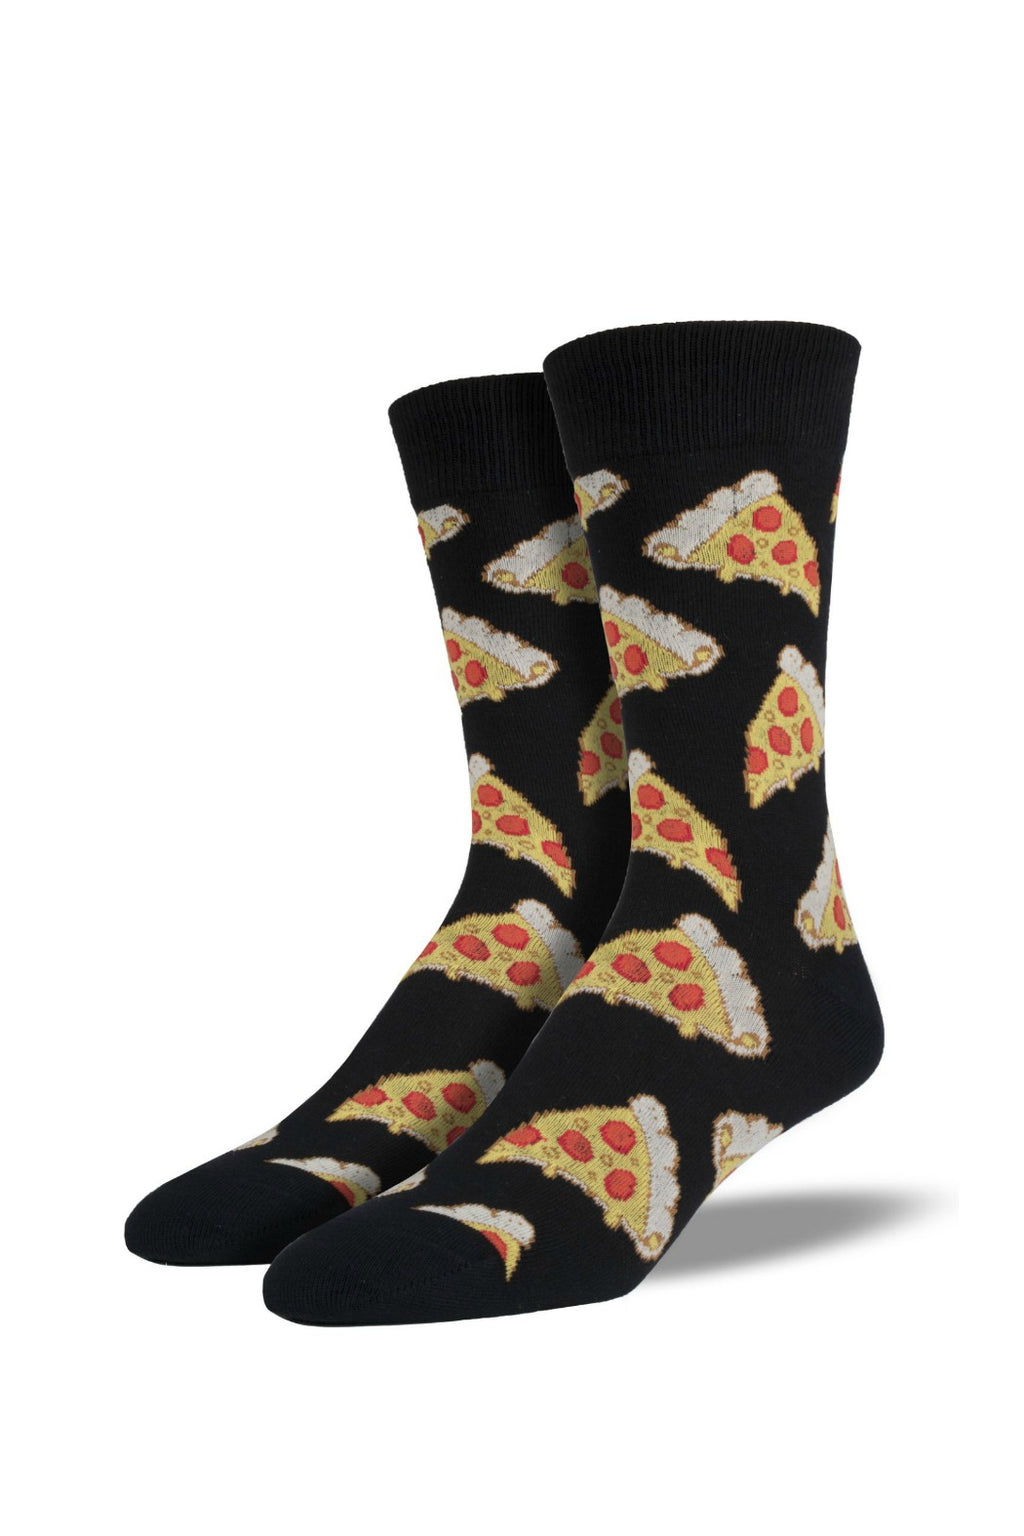 Socksmith Men's Novelty Bamboo Pizza Socks